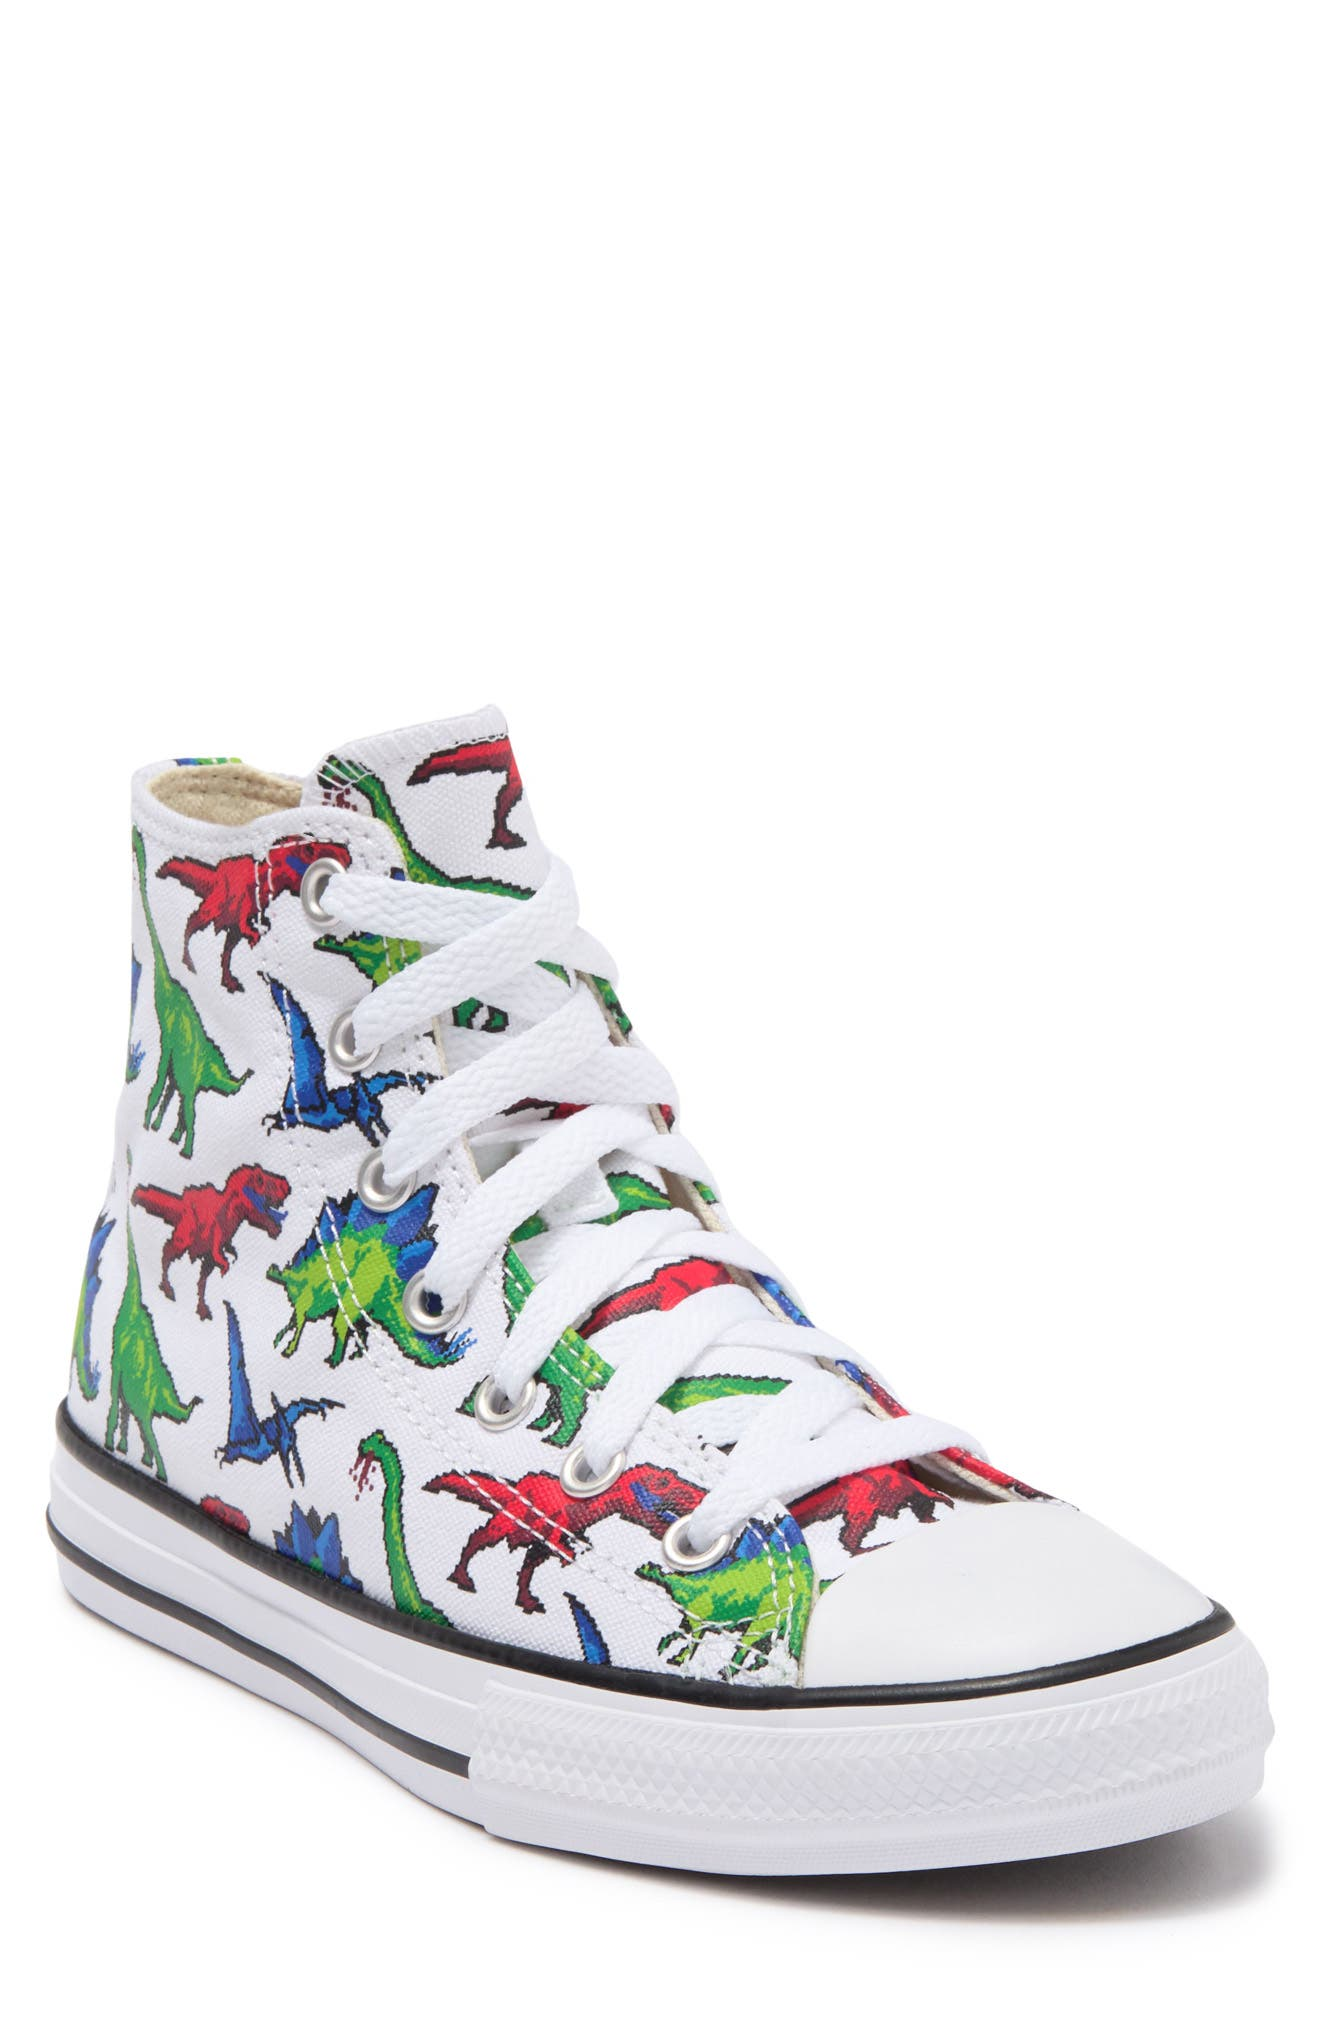 Converse Kids' Chuck Taylor All Star High-top Printed Sneaker In White/bold Wasa